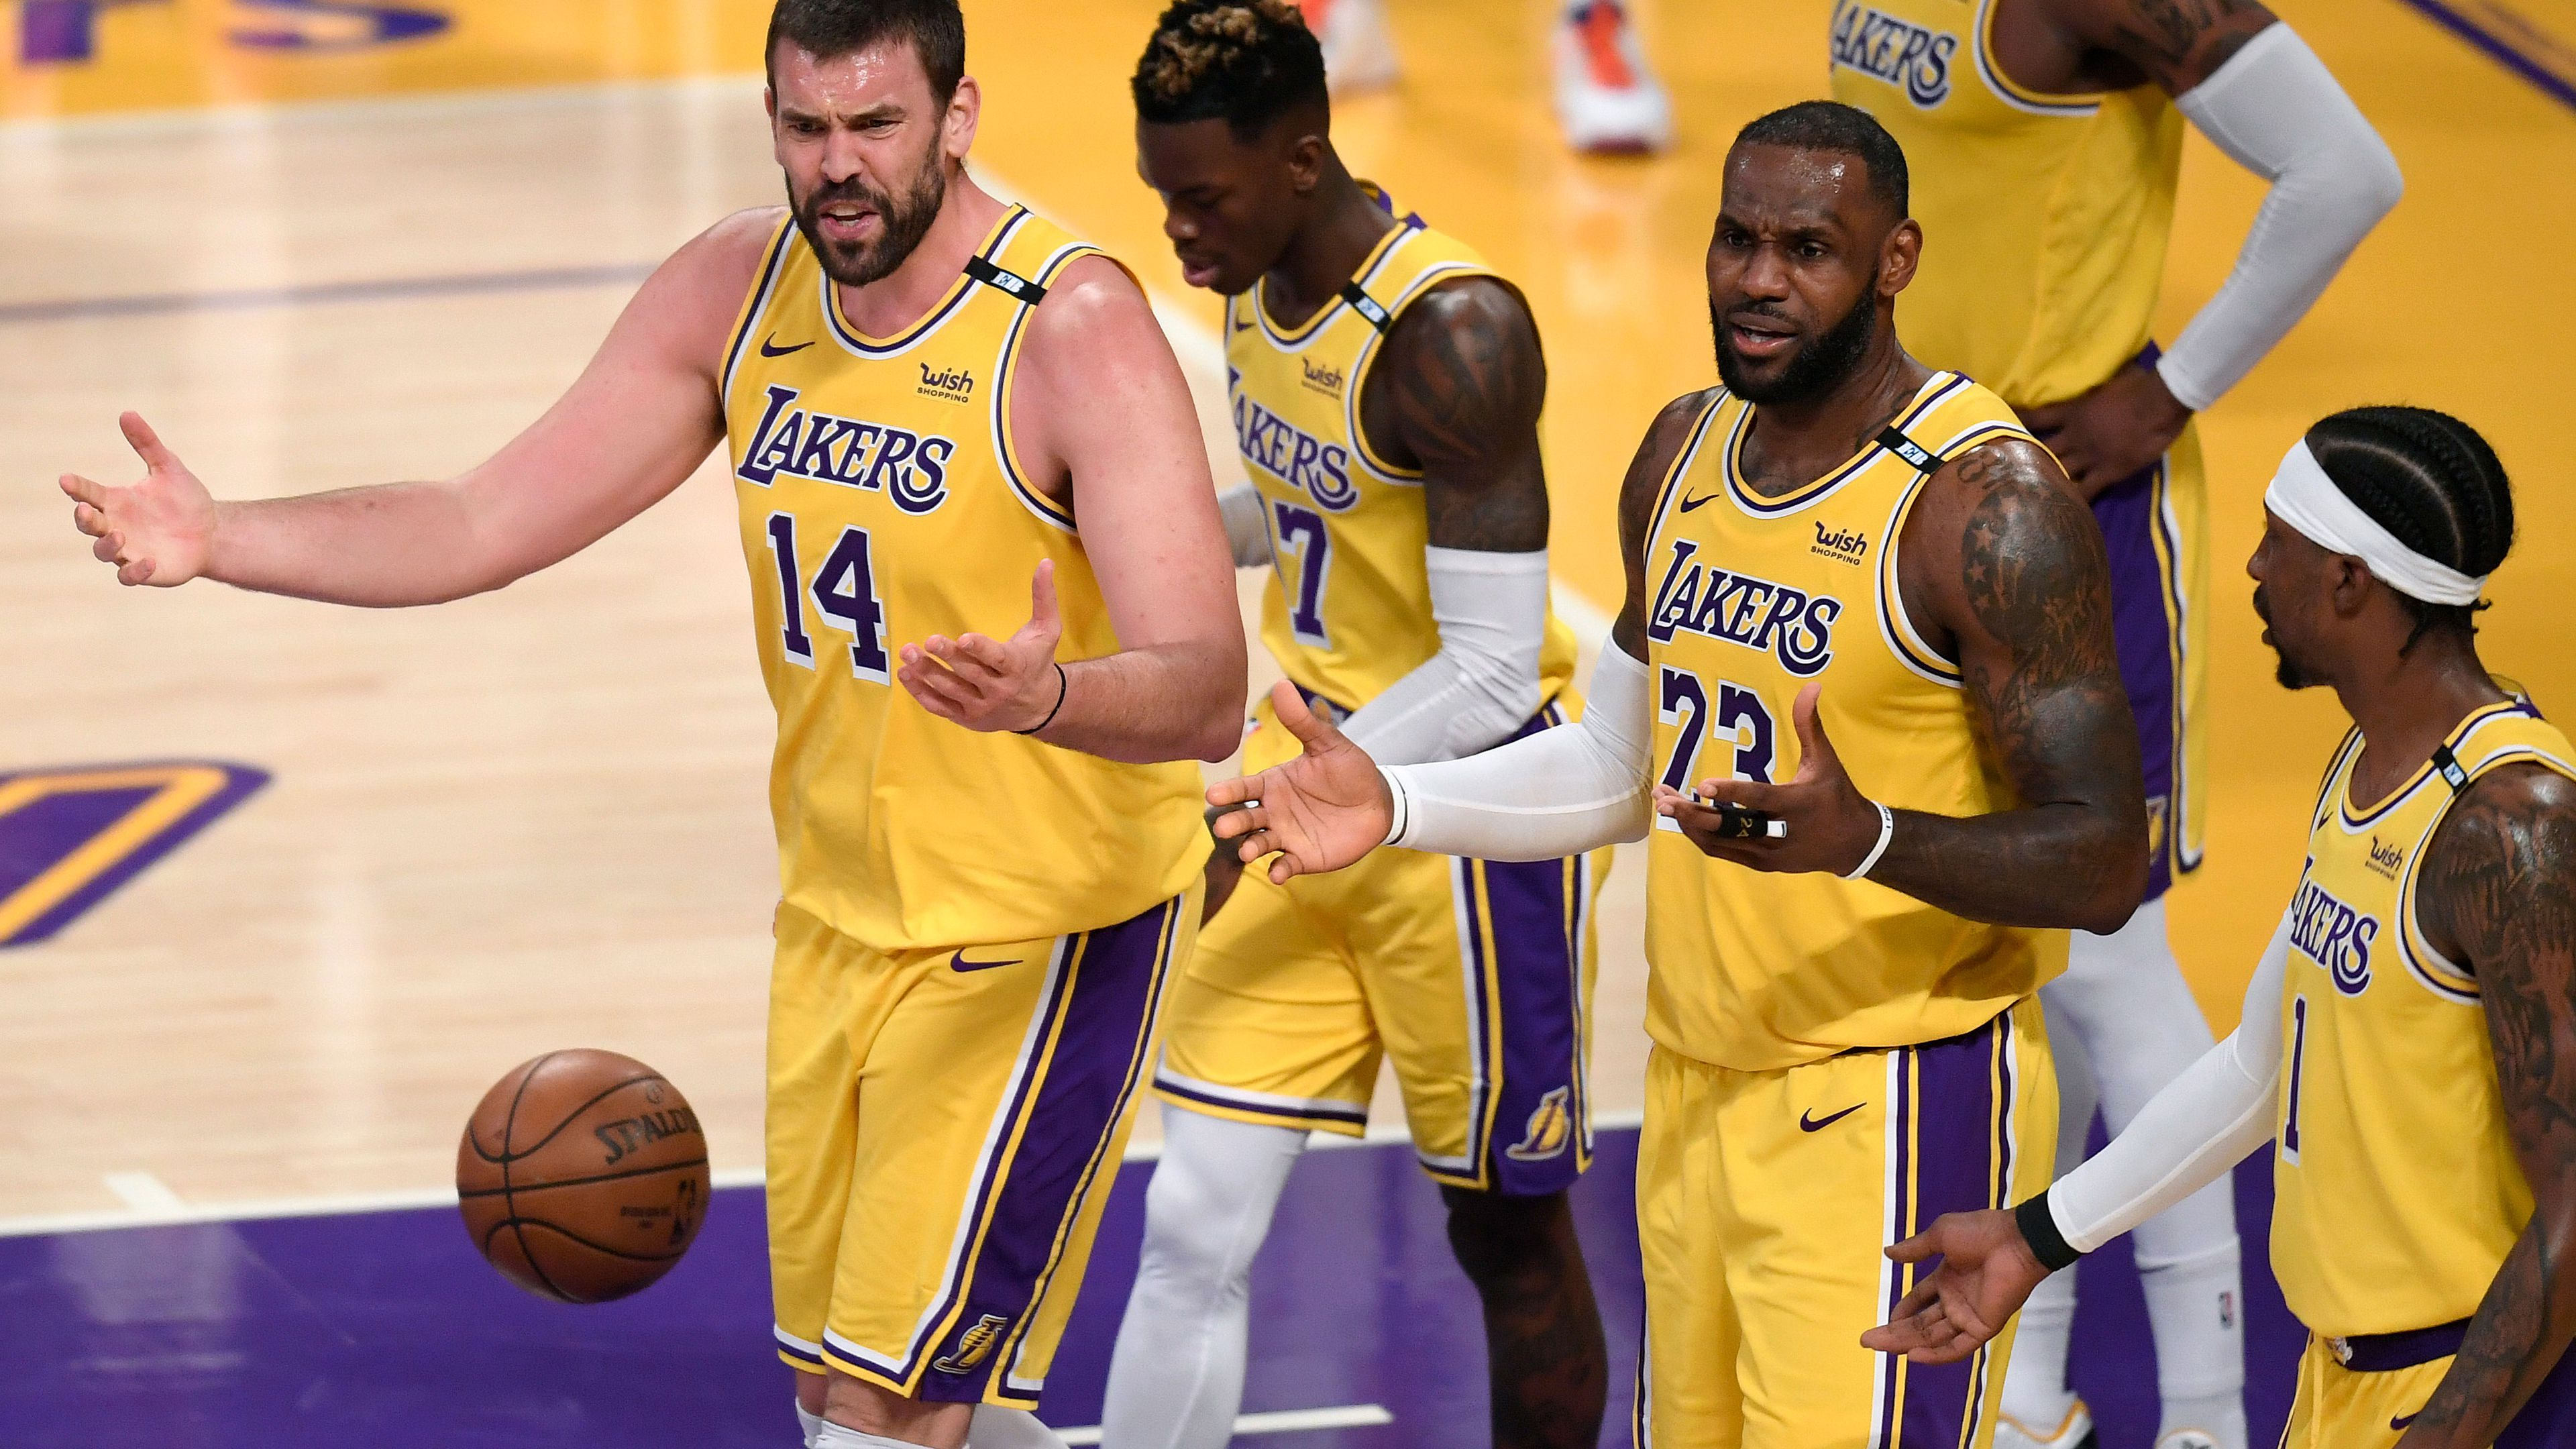 LeBron James and LA Lakers eliminated from NBA Playoffs first round